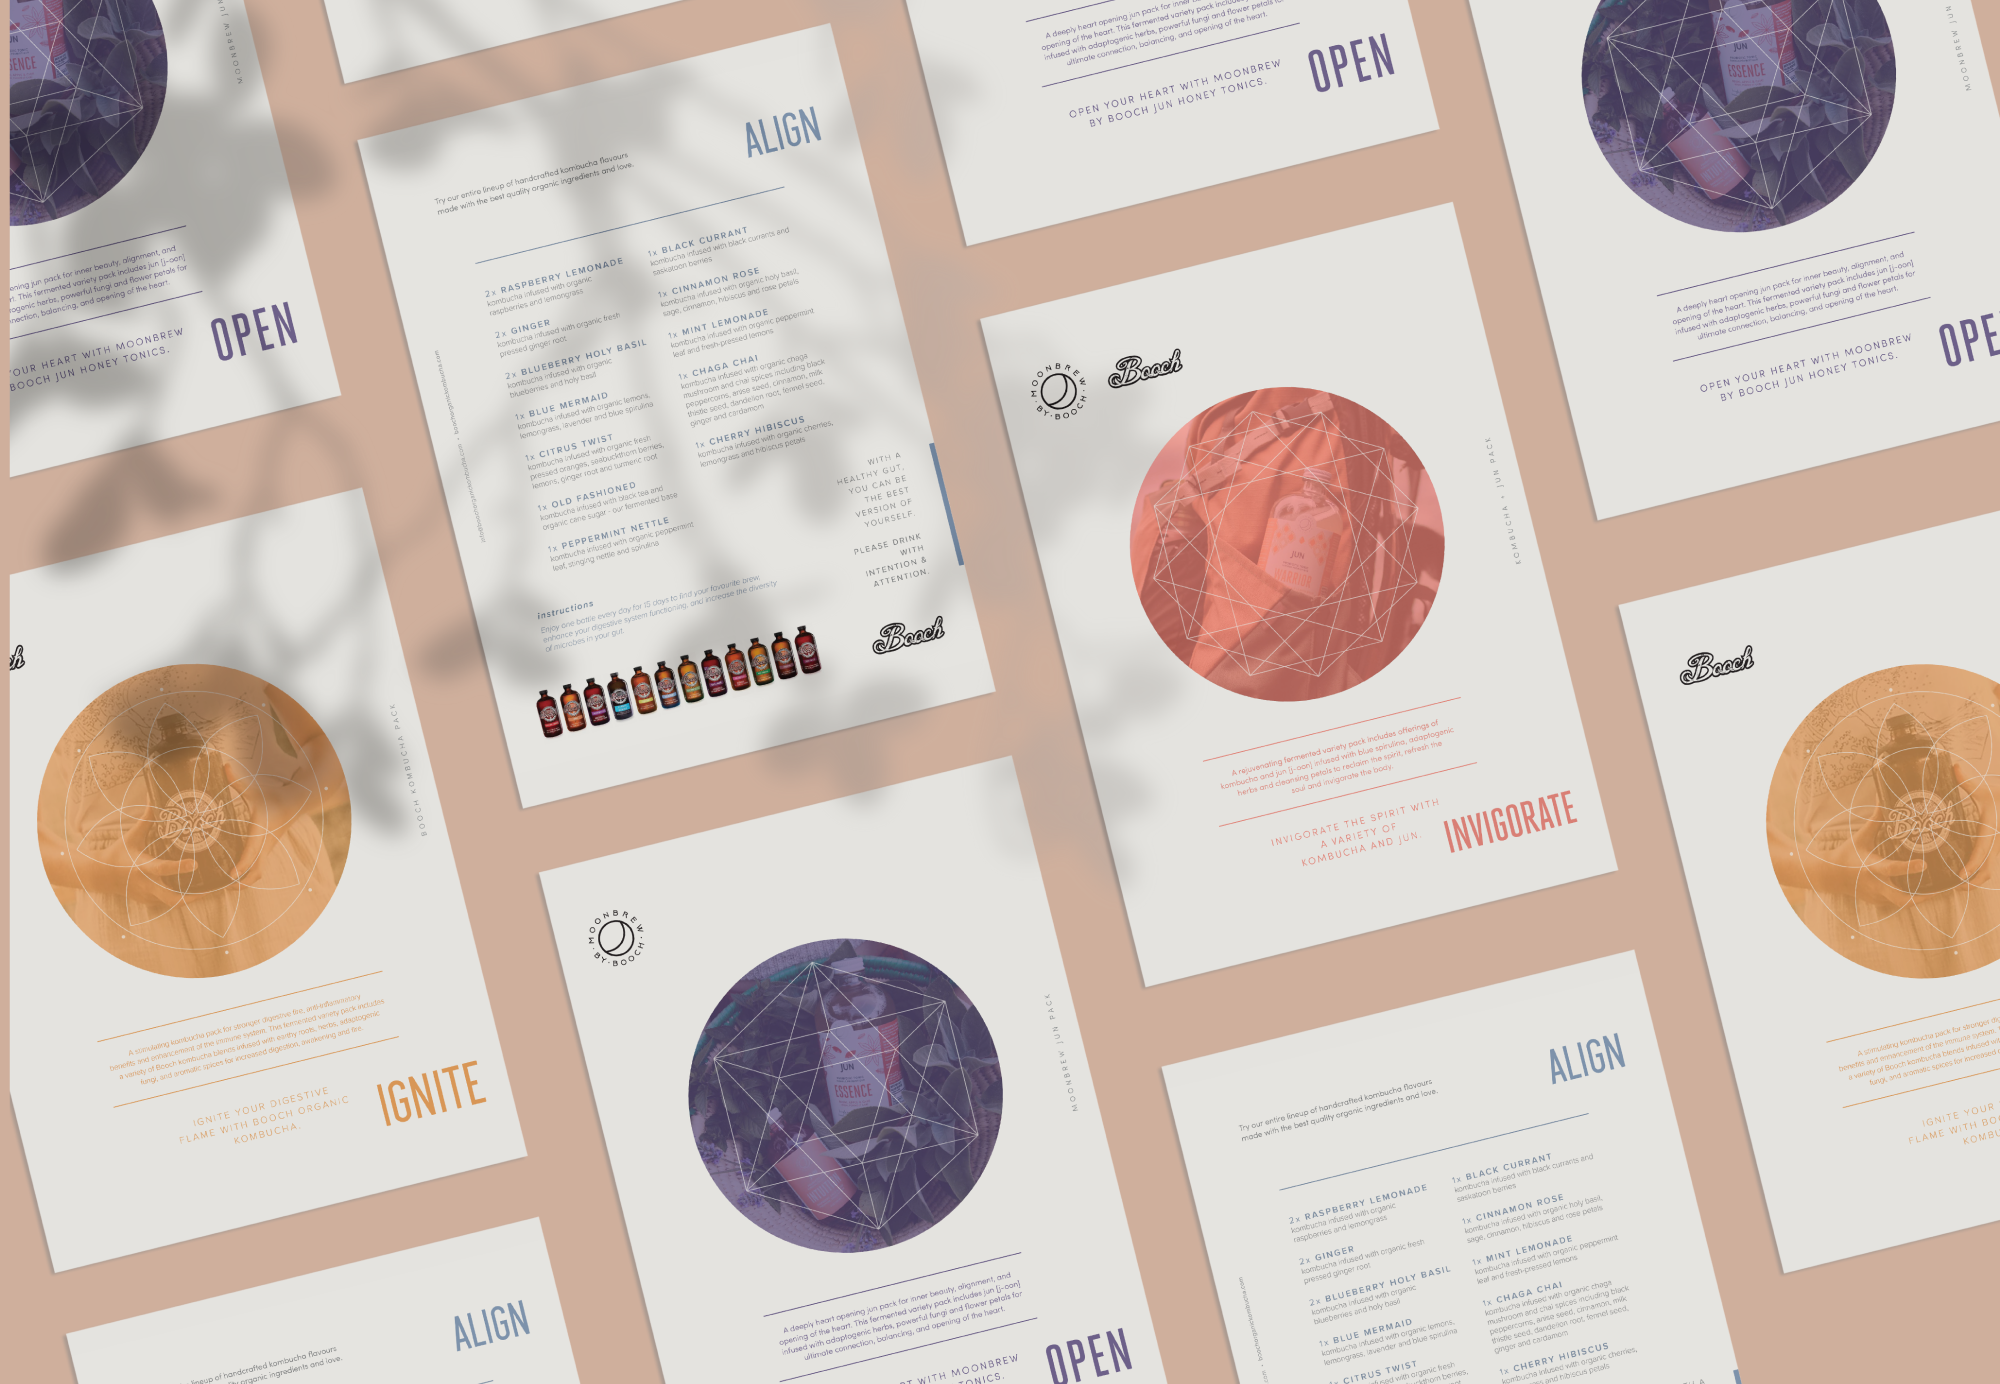 Moonbrew by Booch product sheets